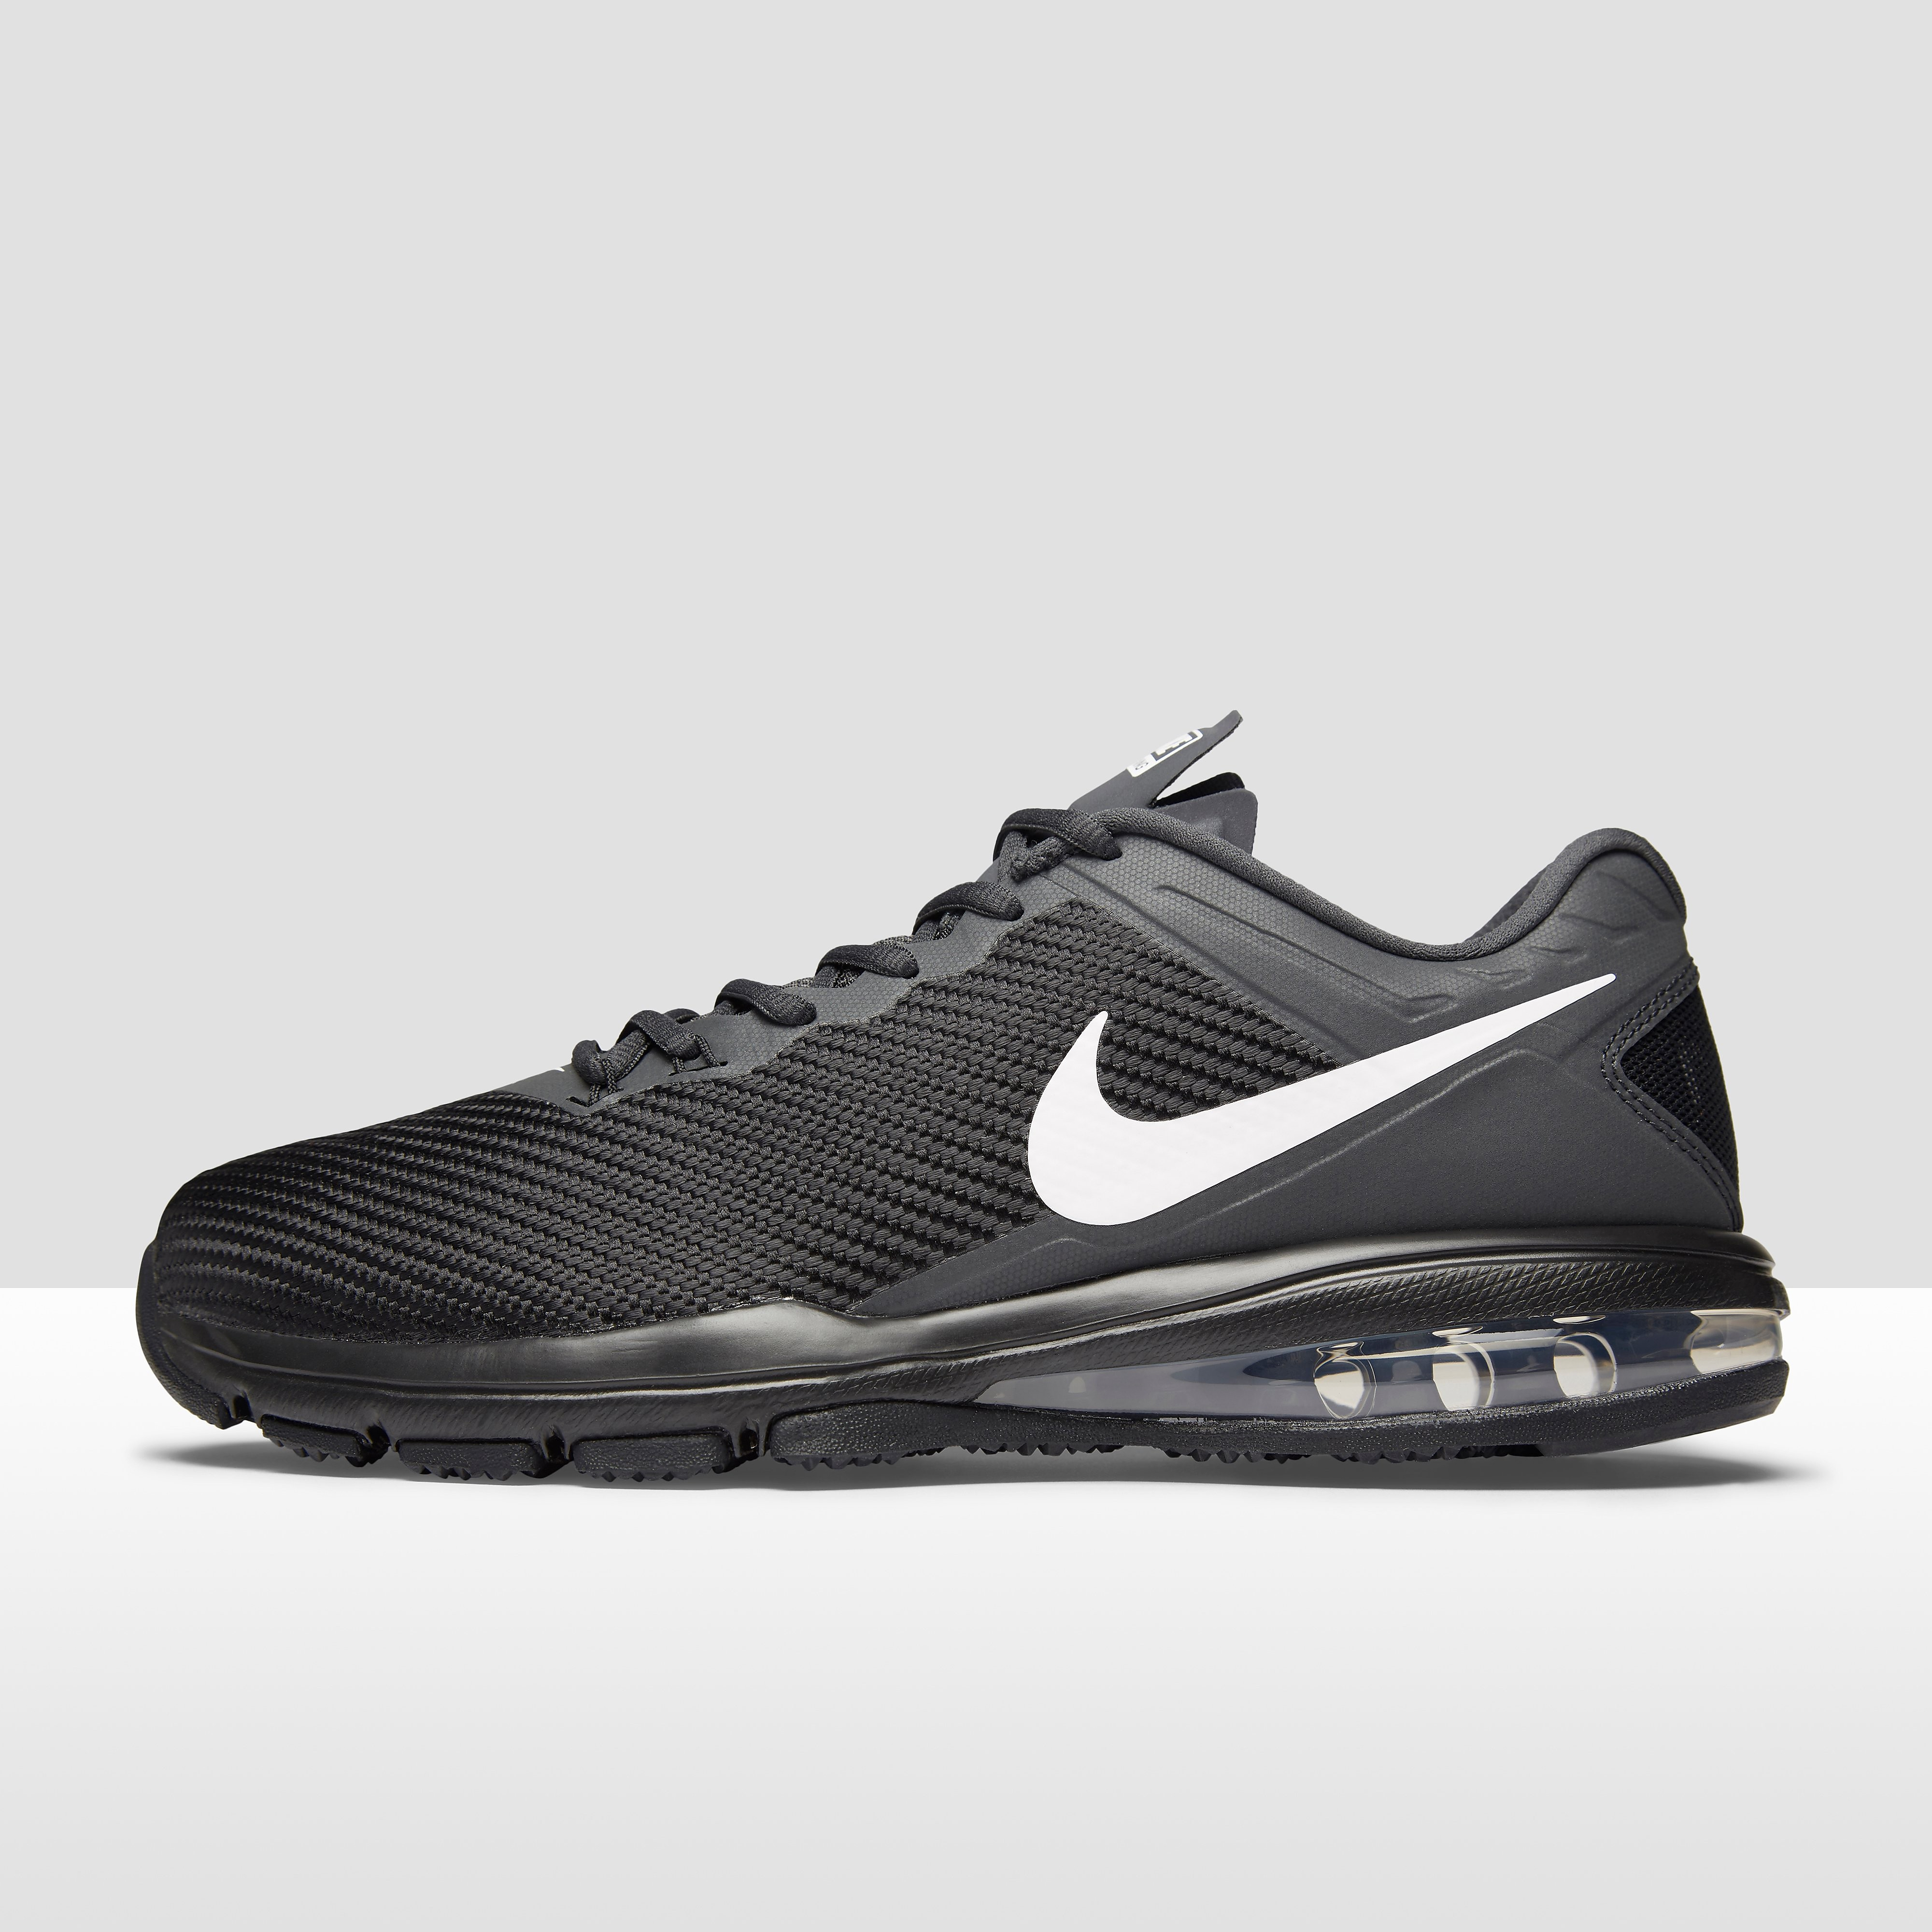 NIKE AIR MAX FULL RIDE TR 1.5 SPORTSCHOENEN ZWART HEREN